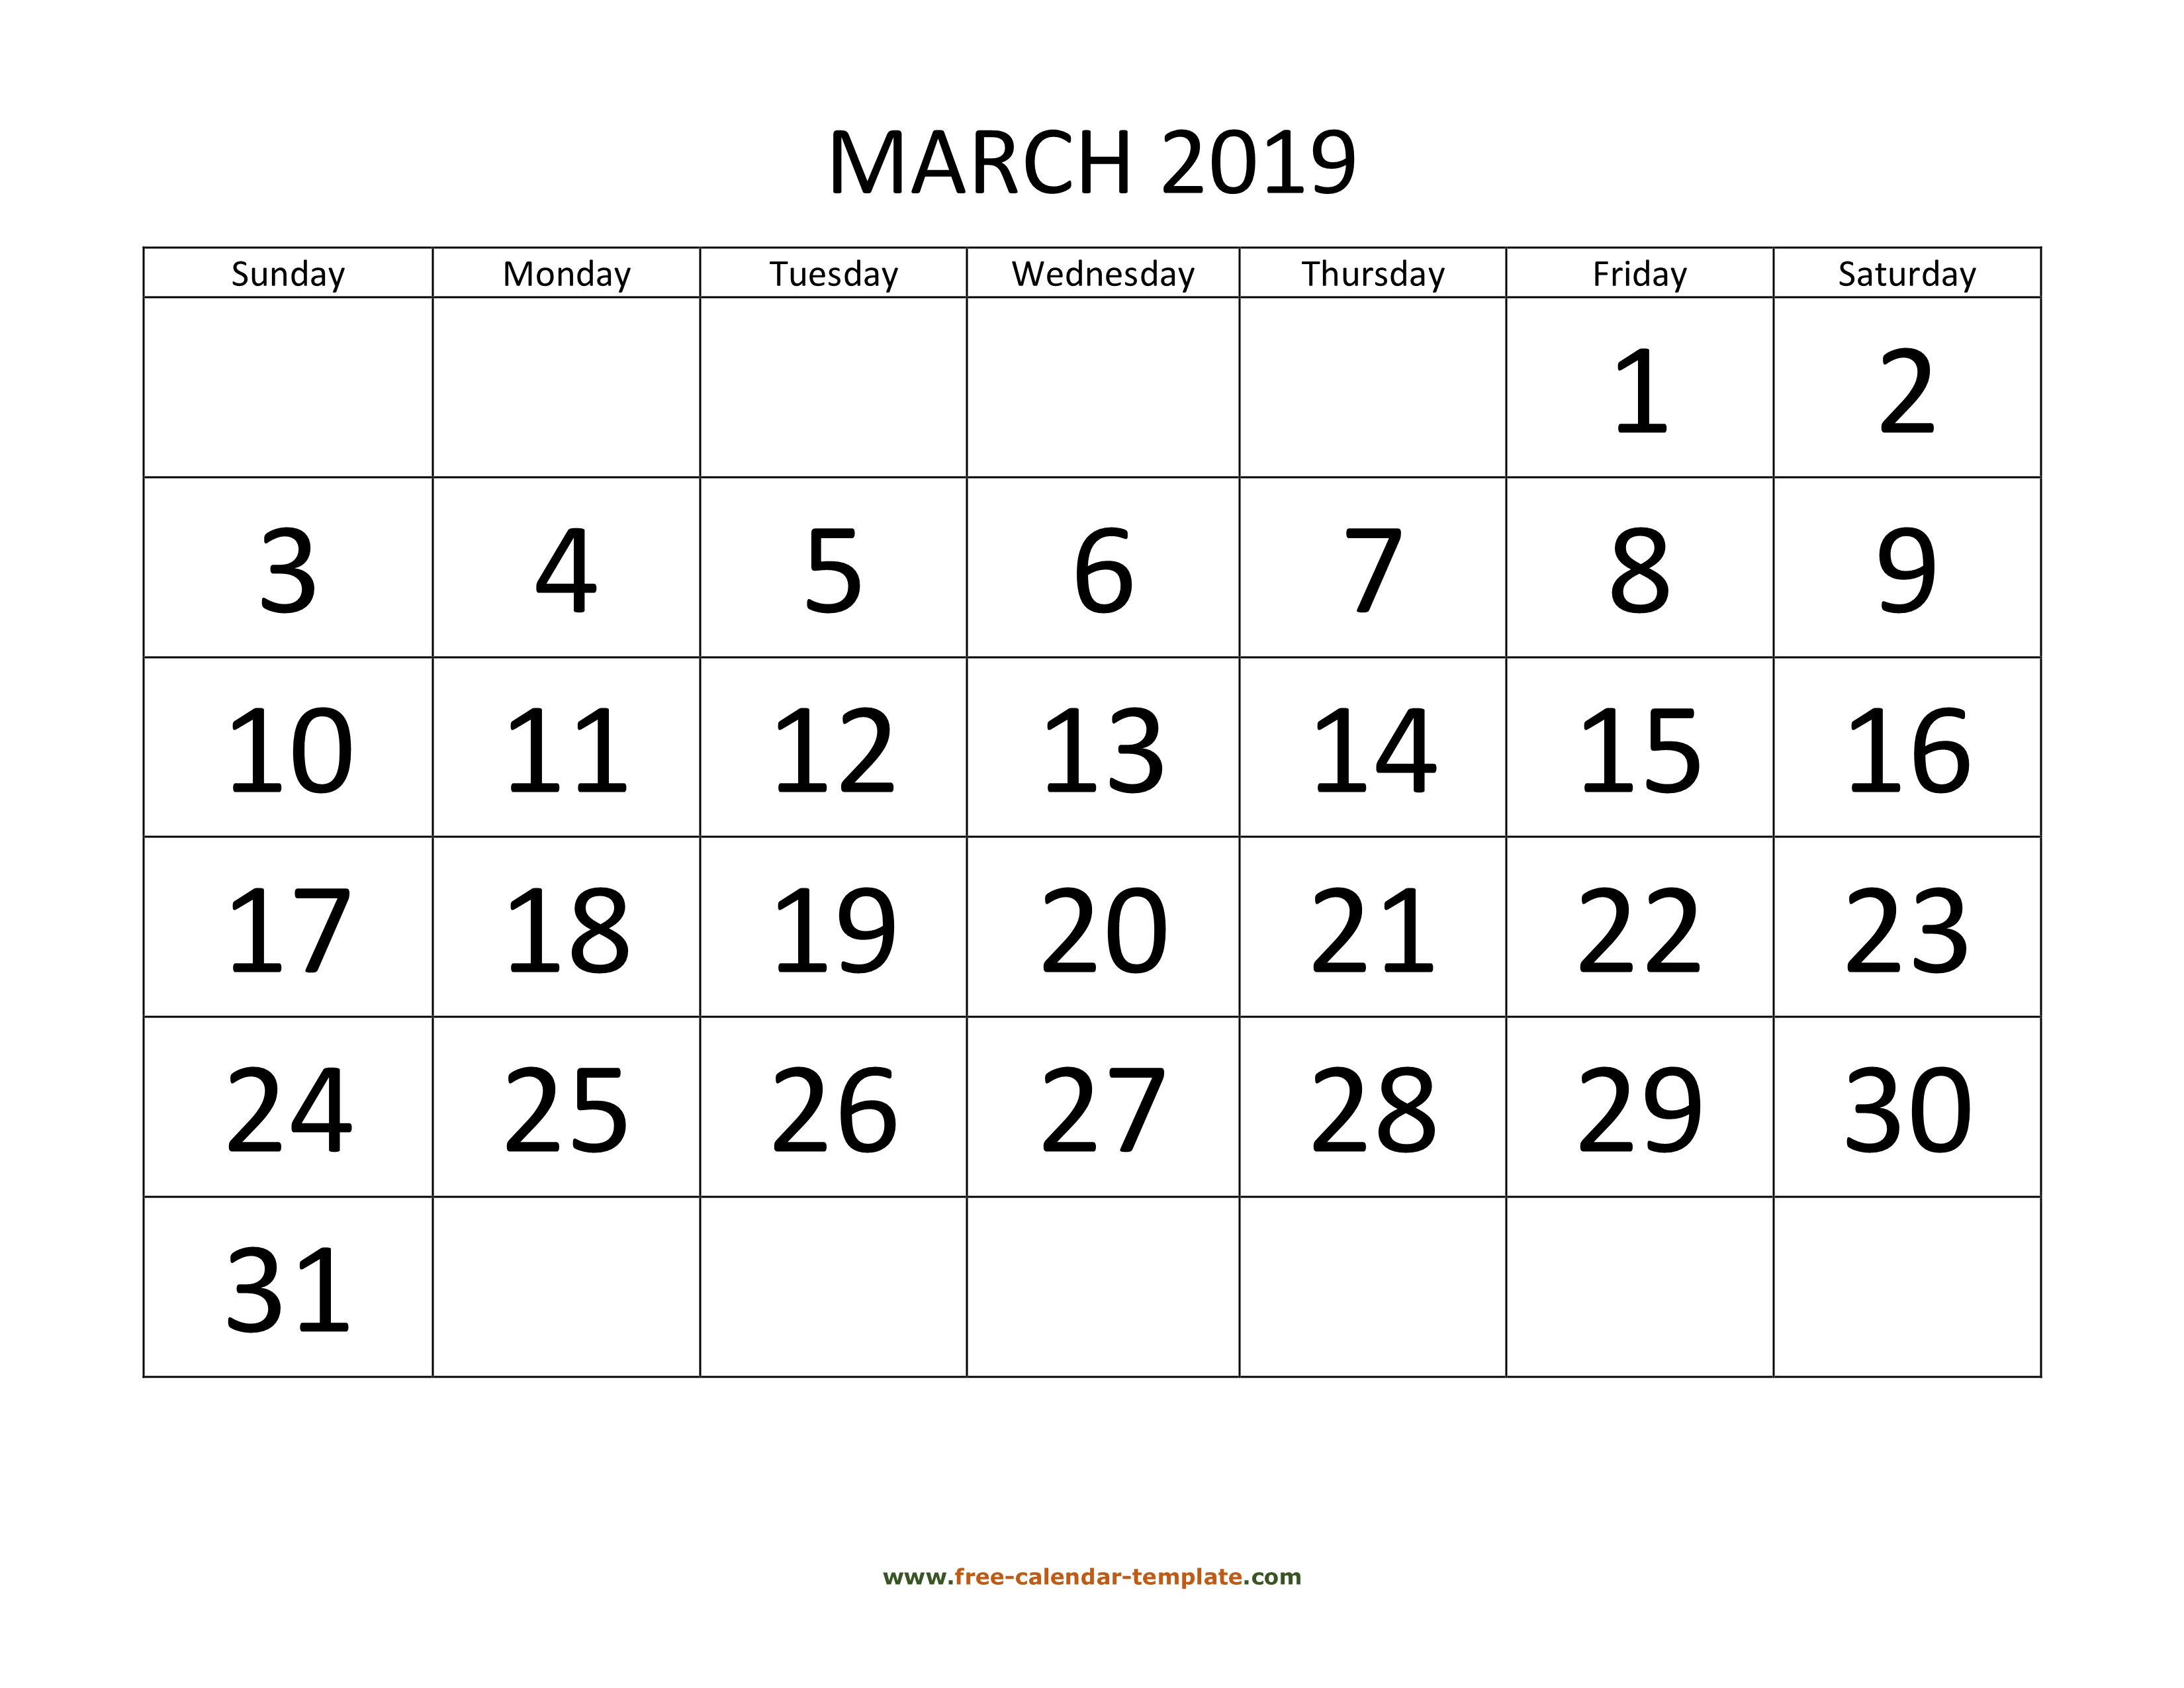 March 2019 Calendar Designed With Large Font Horizontal